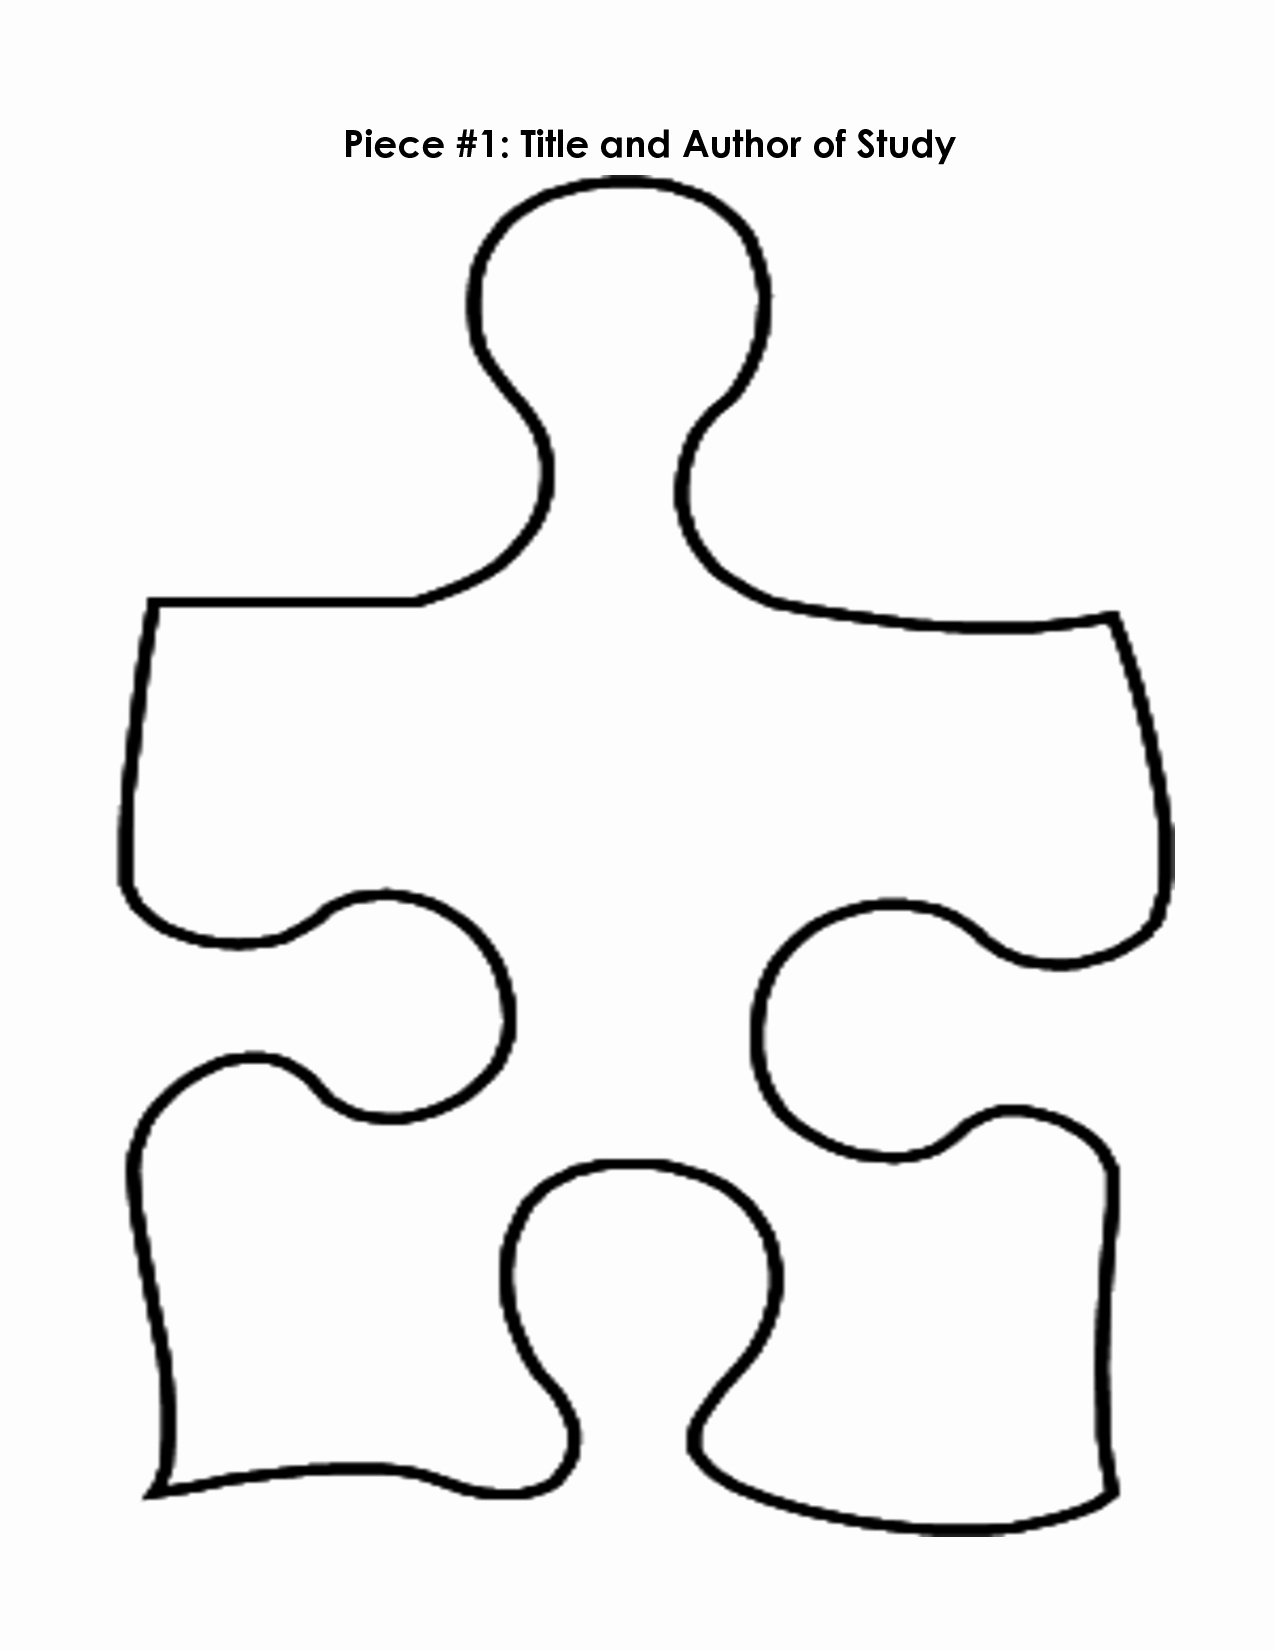 Printable Puzzle Pieces Template Best Of Free Puzzle Pieces Template Download Free Clip Art Free